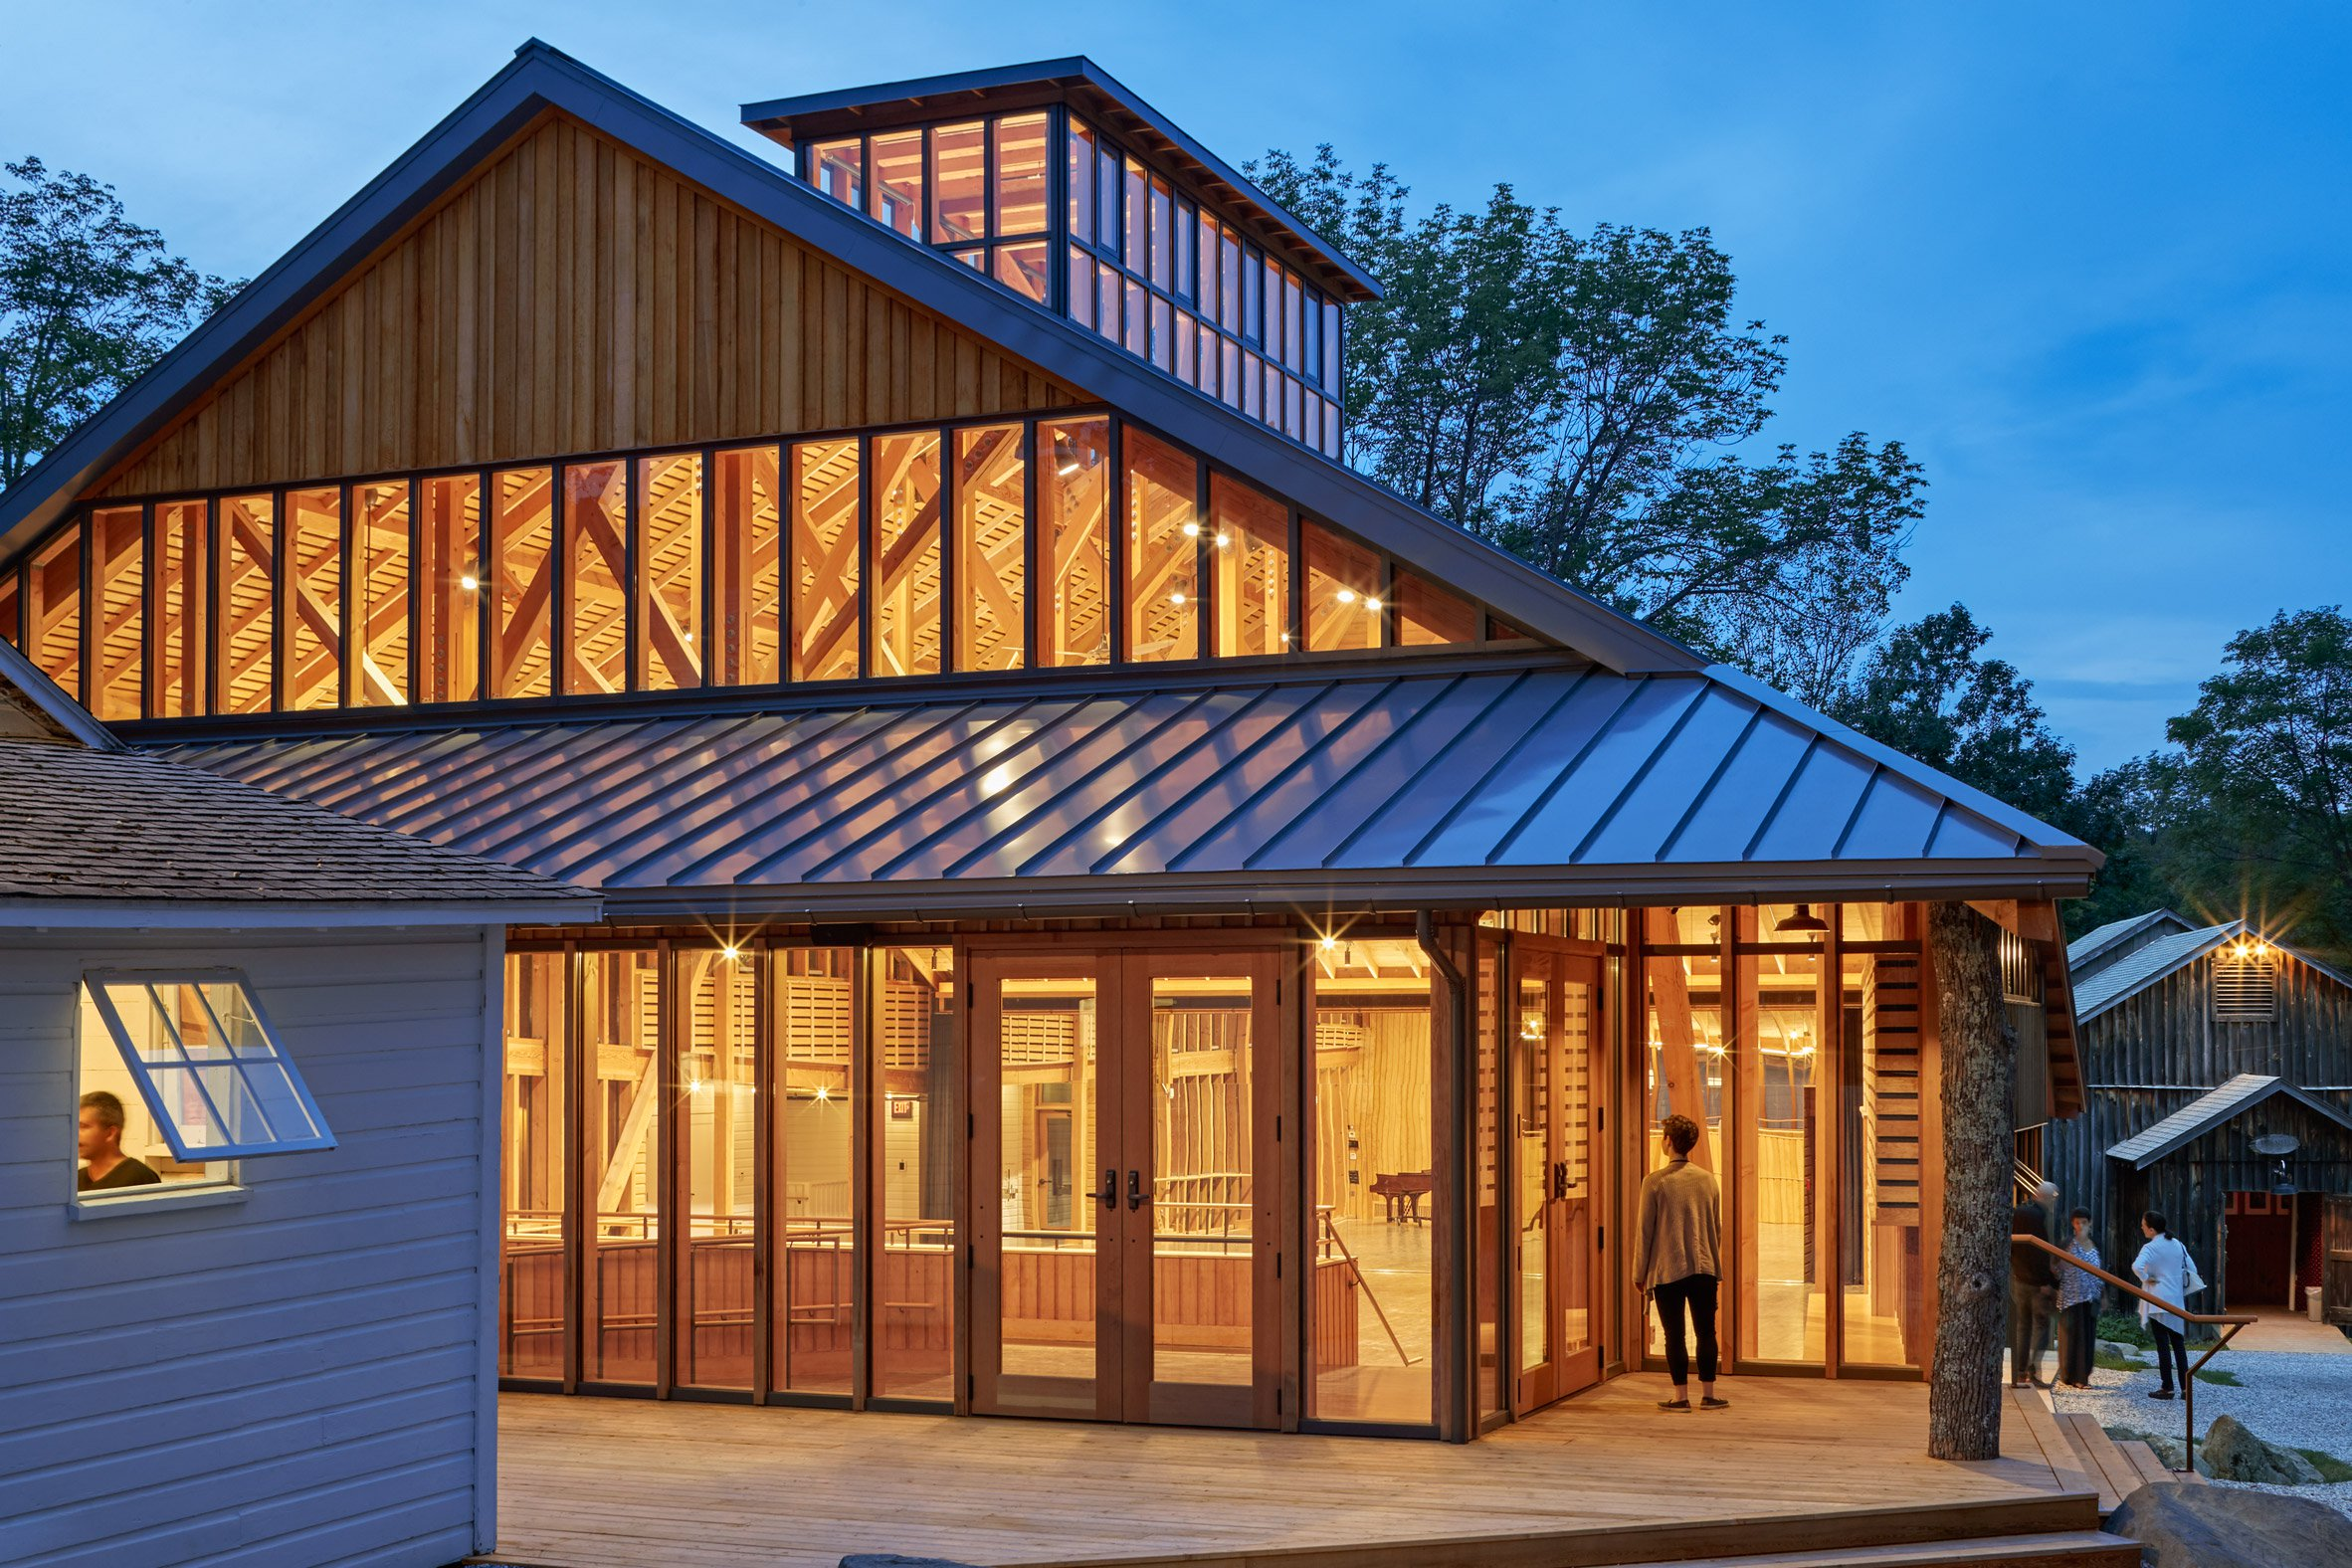 Flansburgh Architects takes cues from wooden barns for dance studio in the Berkshires